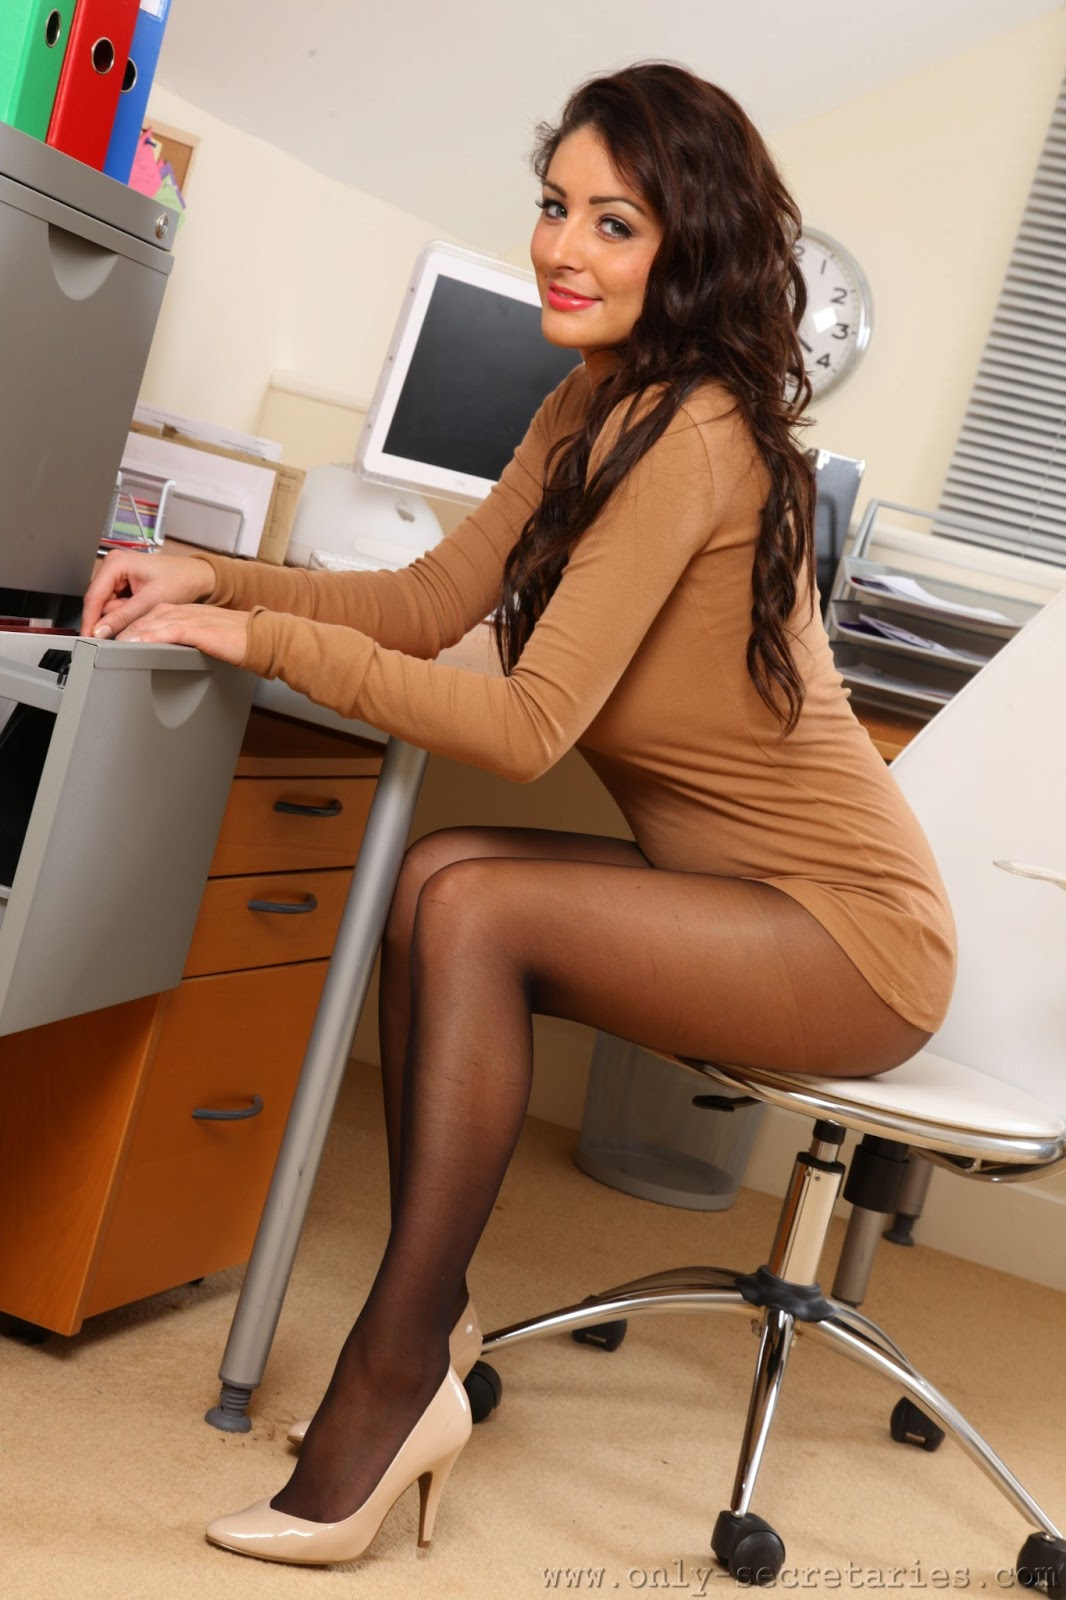 Nude In Office